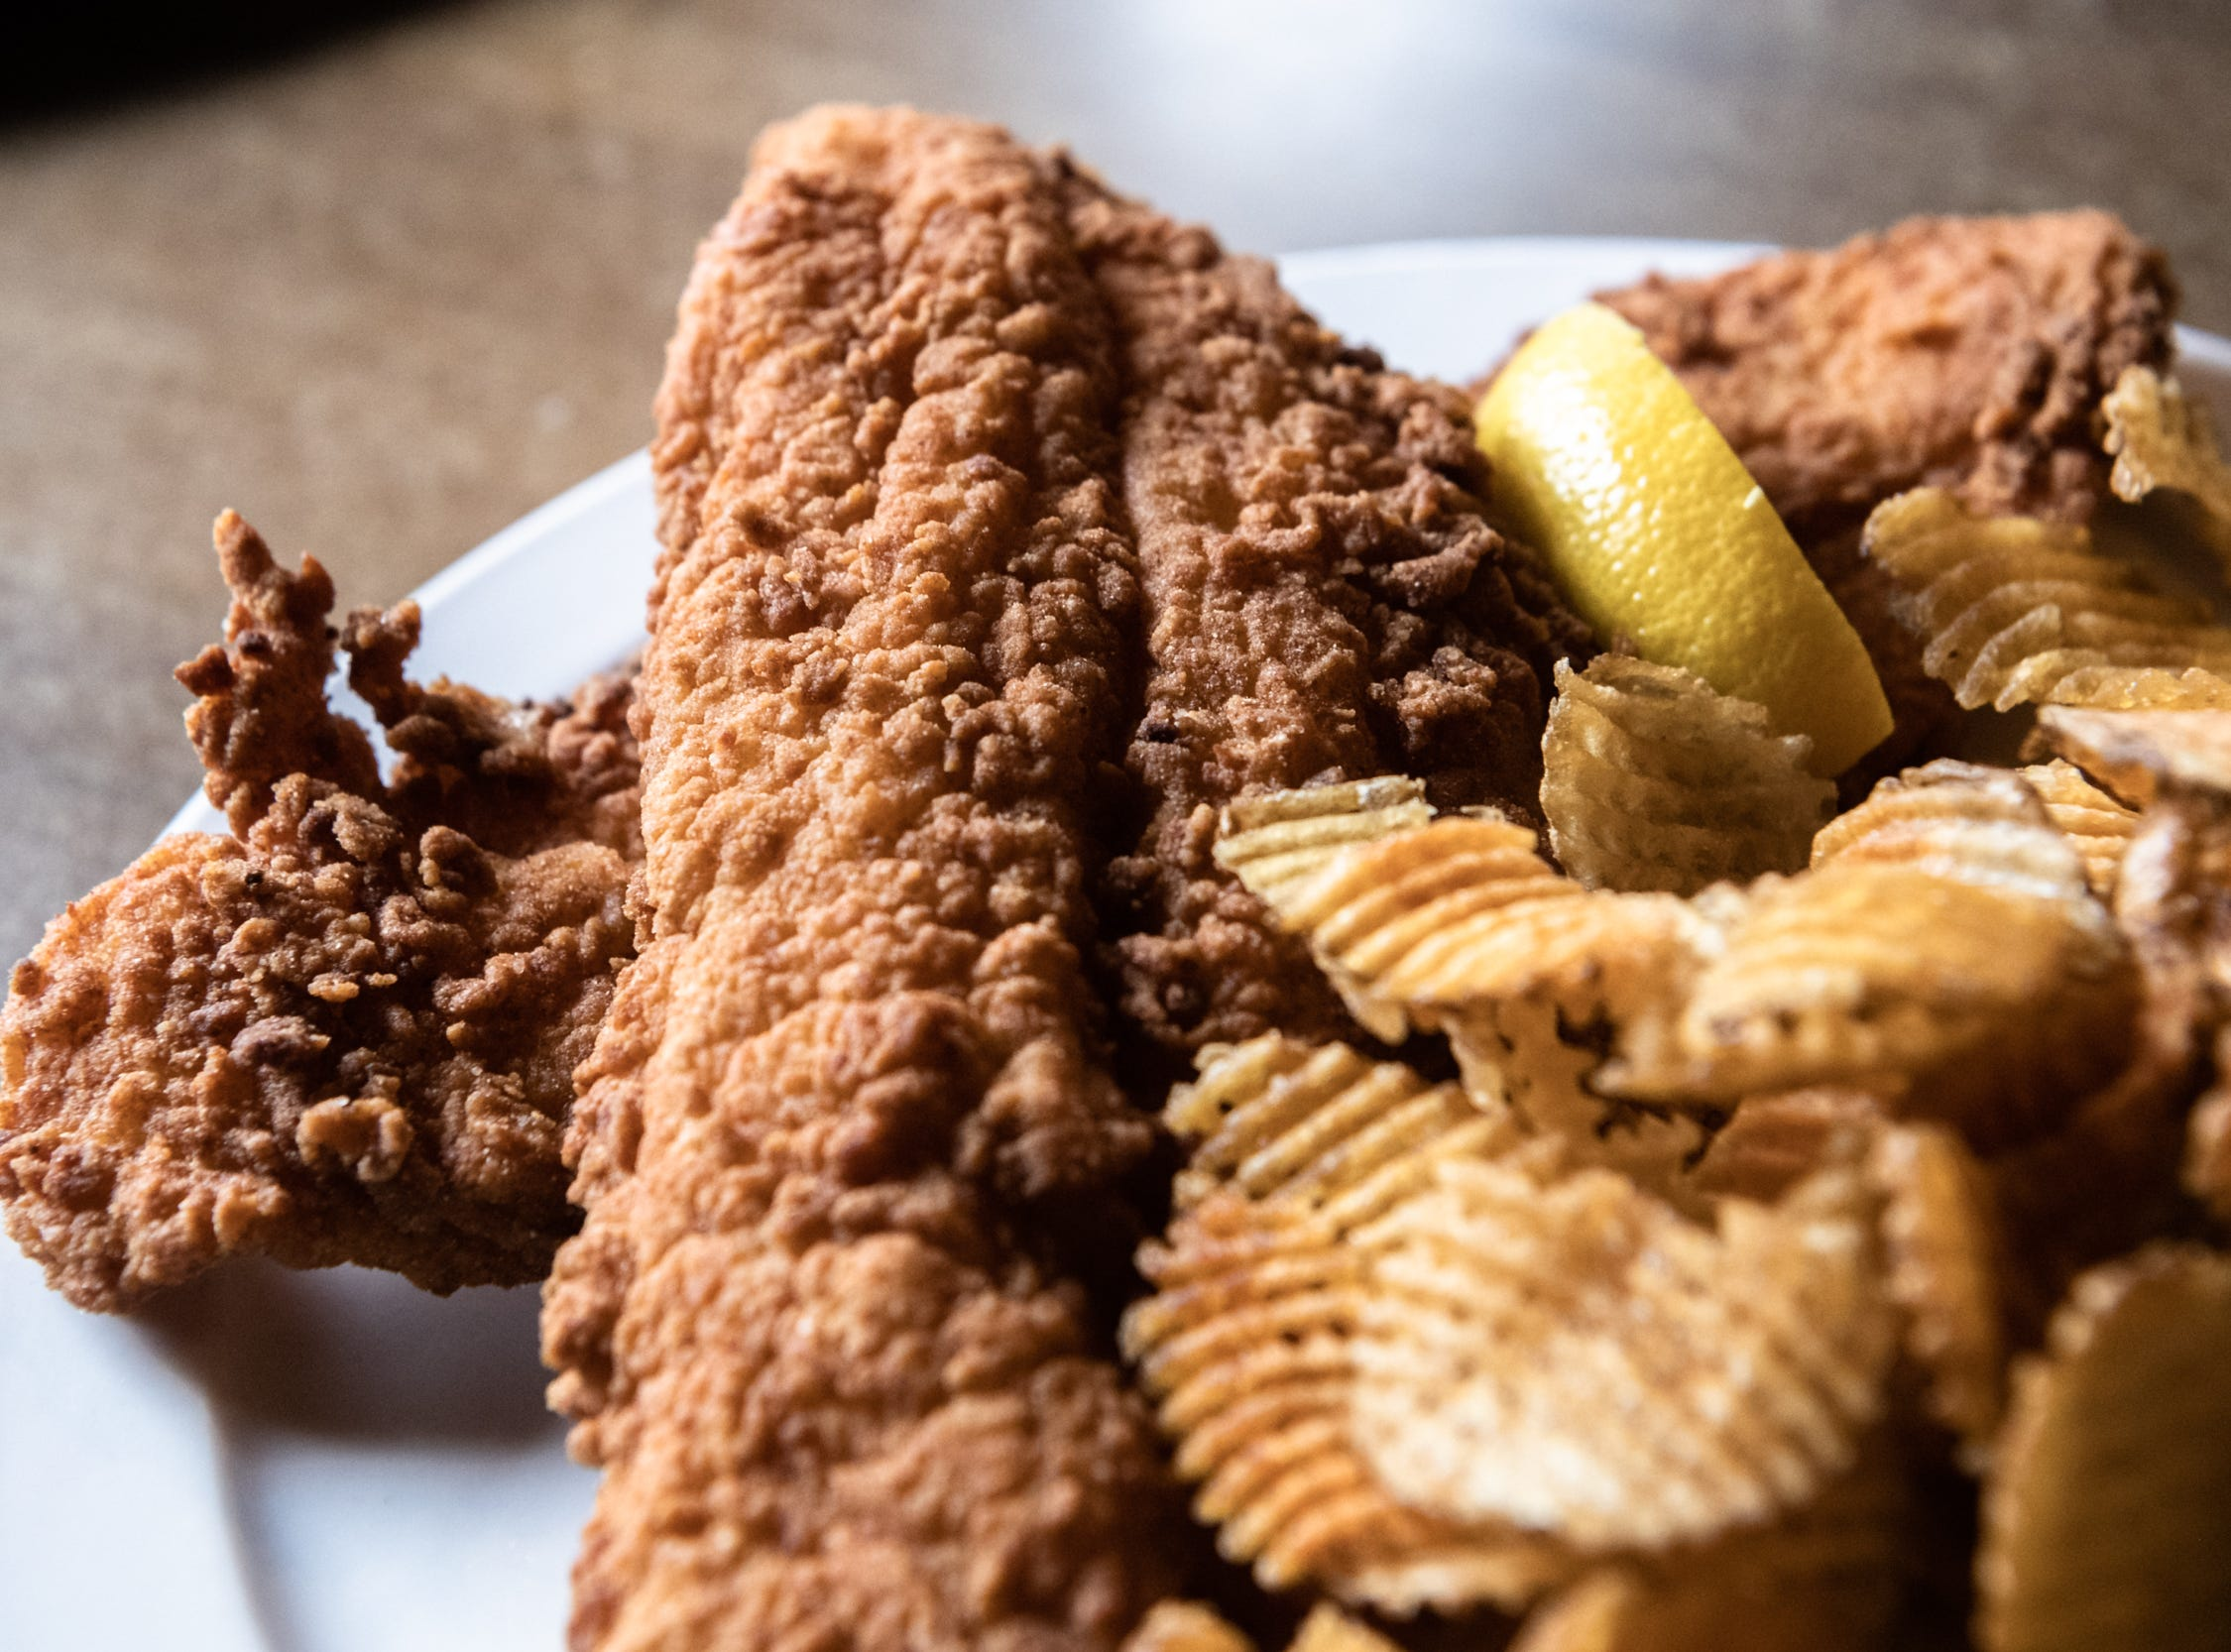 Khairee's fish and woodchips offered at Southern Porch restaurant in Canton.